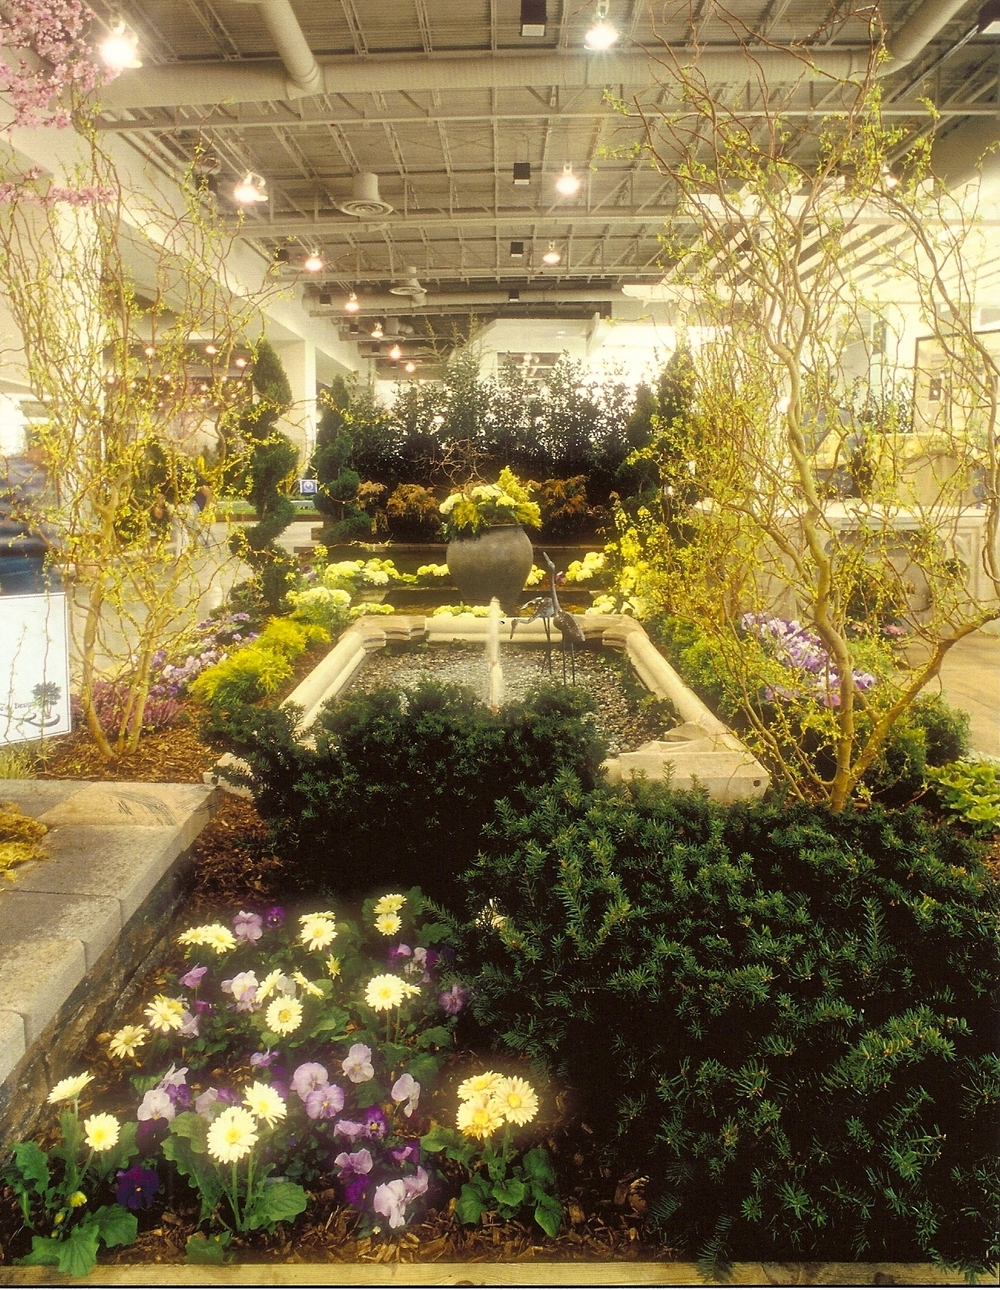 Washington Flower and Garden Show, Excellence in Design